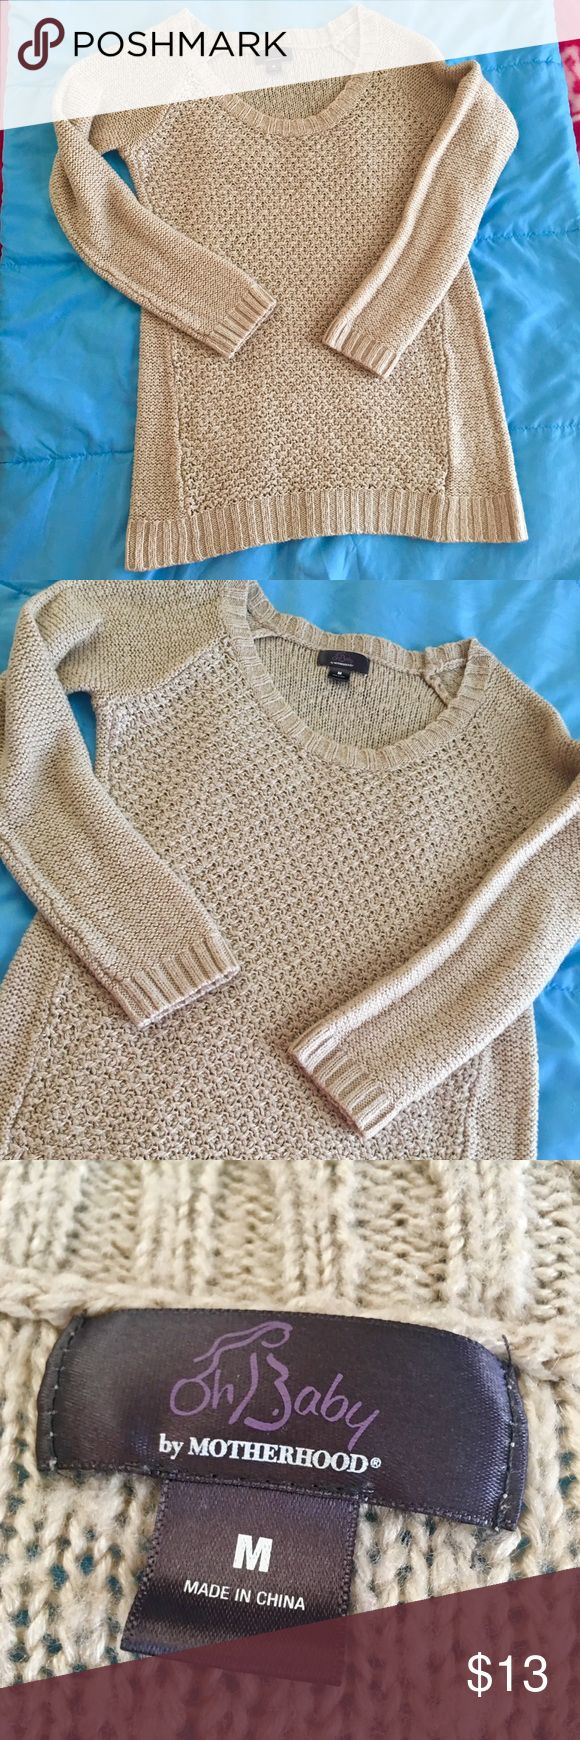 Maternity sweater Motherhood, maternity sweater. Beige color. Has small holes on back and sides to insert a thin ribbon or belt to make it tighter above belly. Does not come with it but can easily be replaced by a ribbon or thin belt. Very beautiful and comfortable. Nice and warm ! Size M . Fits both size Small and Medium. Very good condition Motherhood Sweaters Crew & Scoop Necks